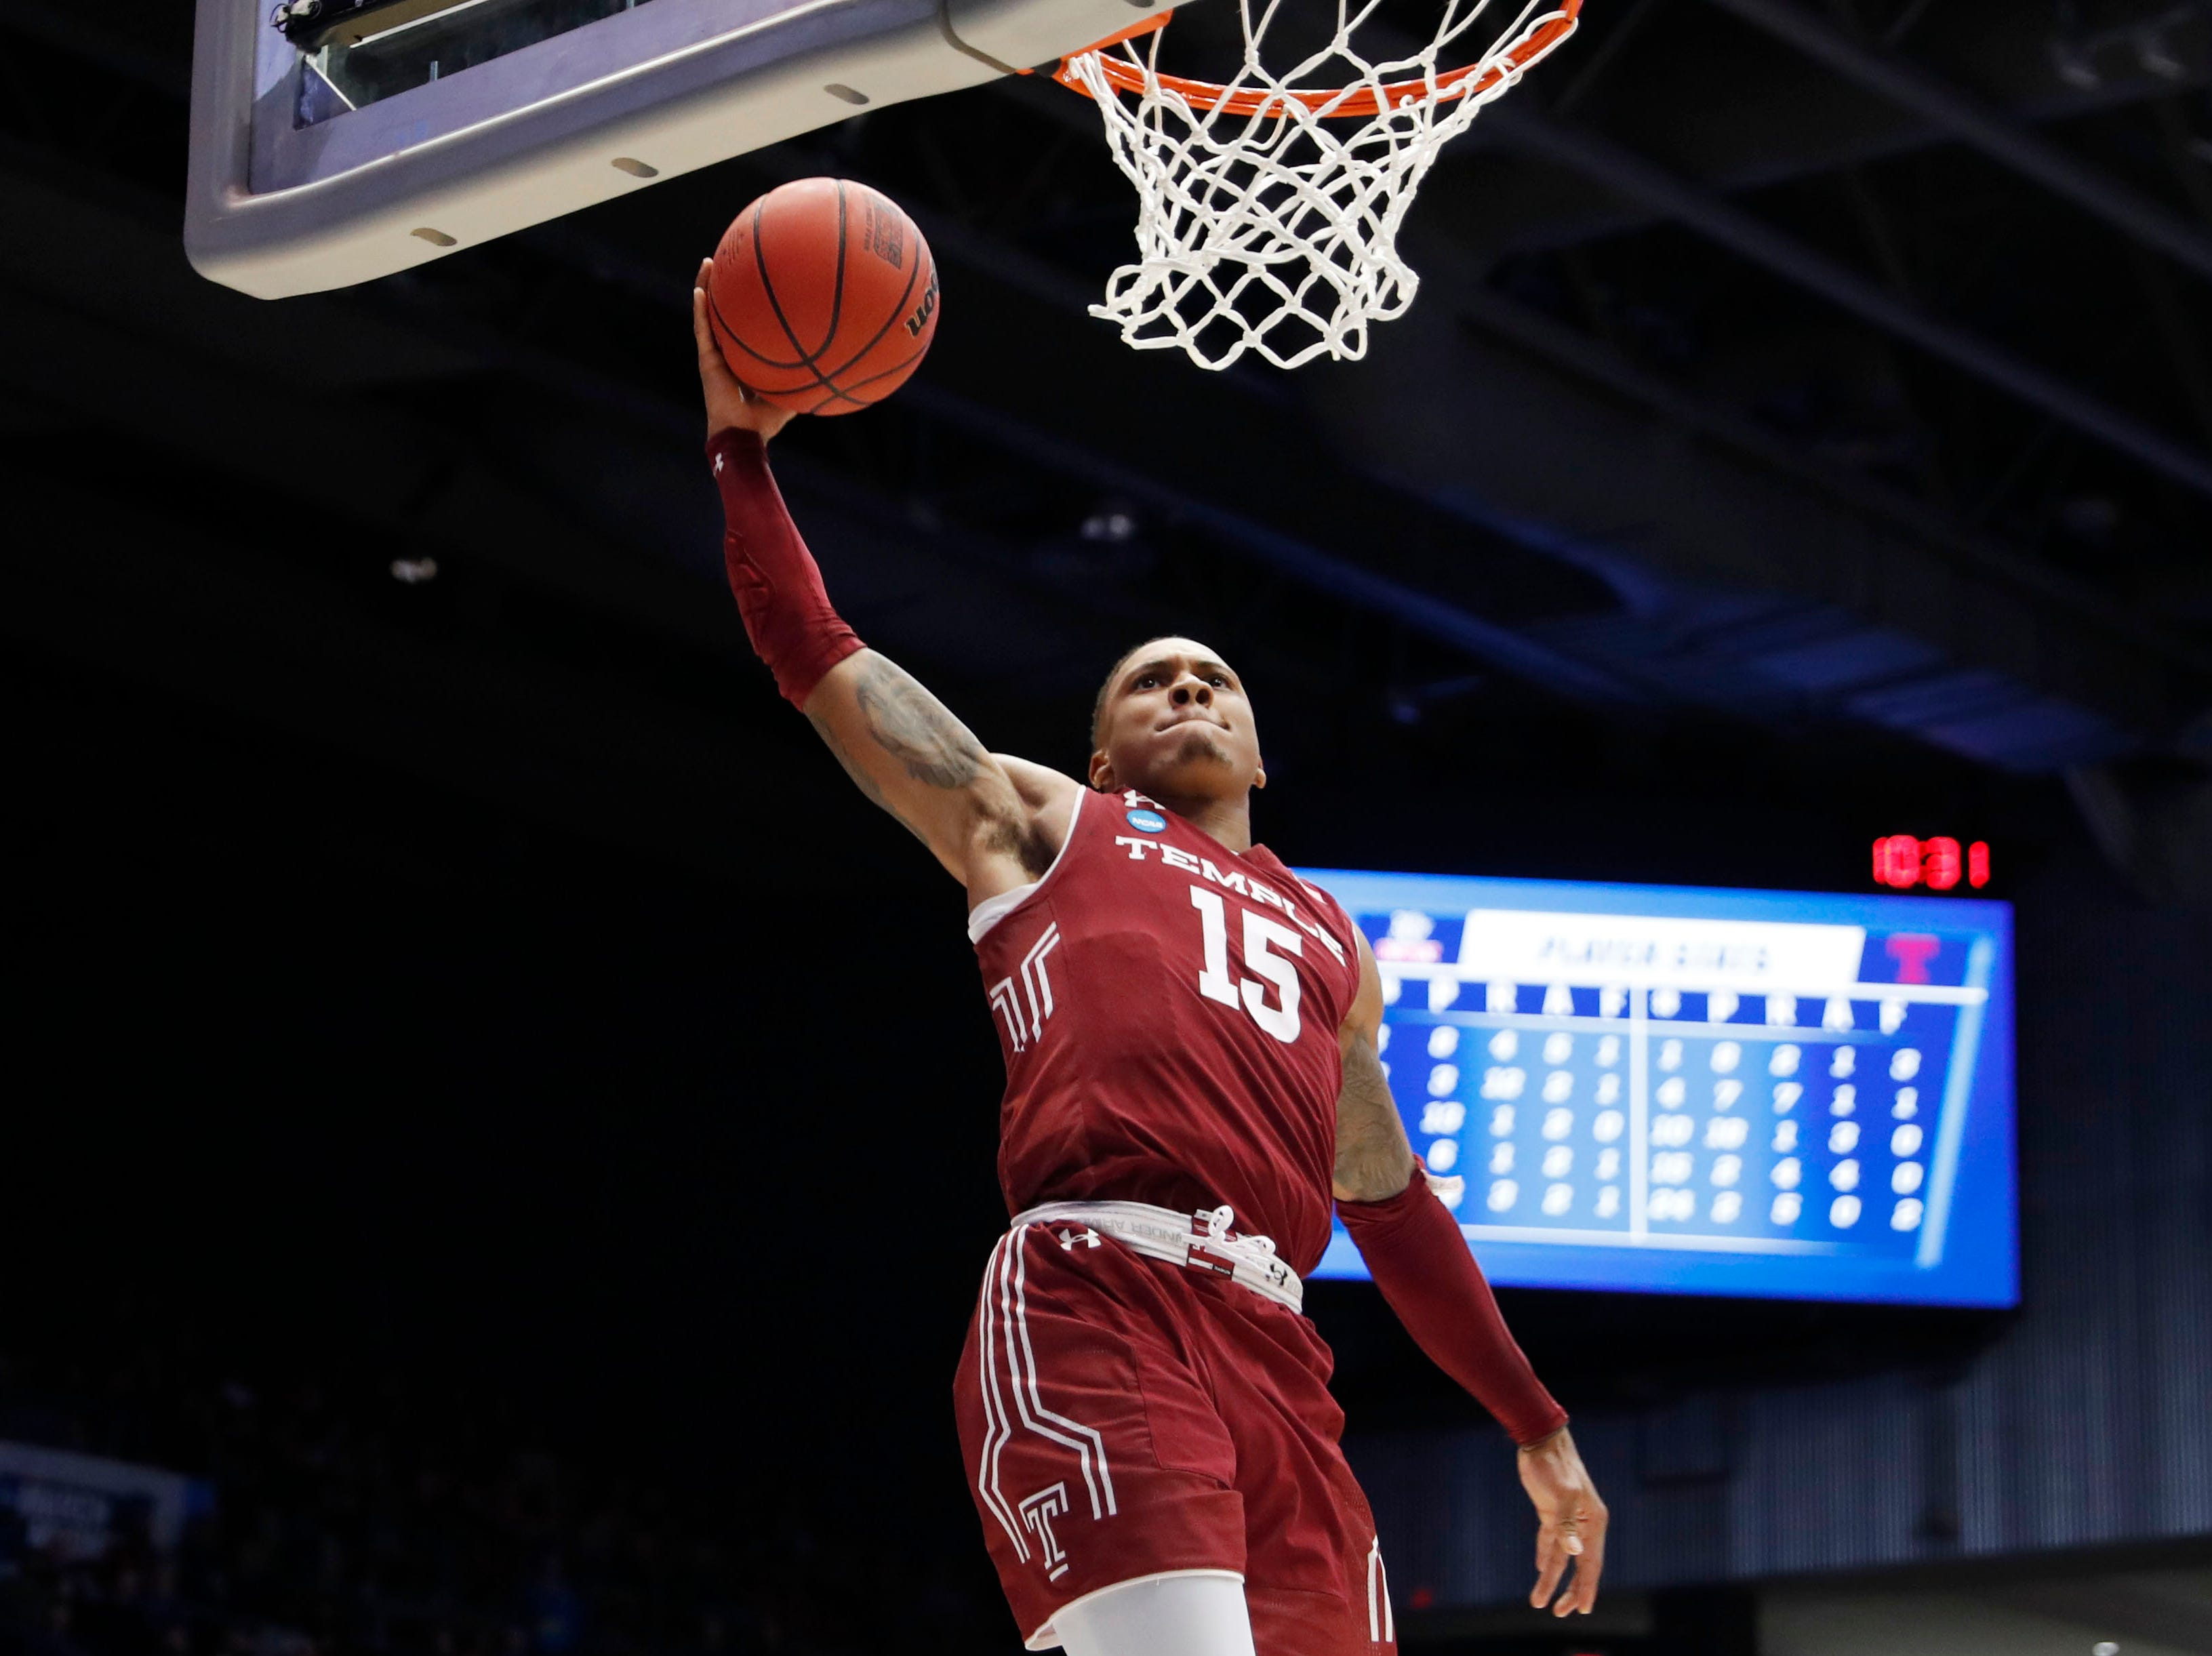 Temple Owls guard Nate Pierre-Louis dunks in the second half against the Belmont Bruins.